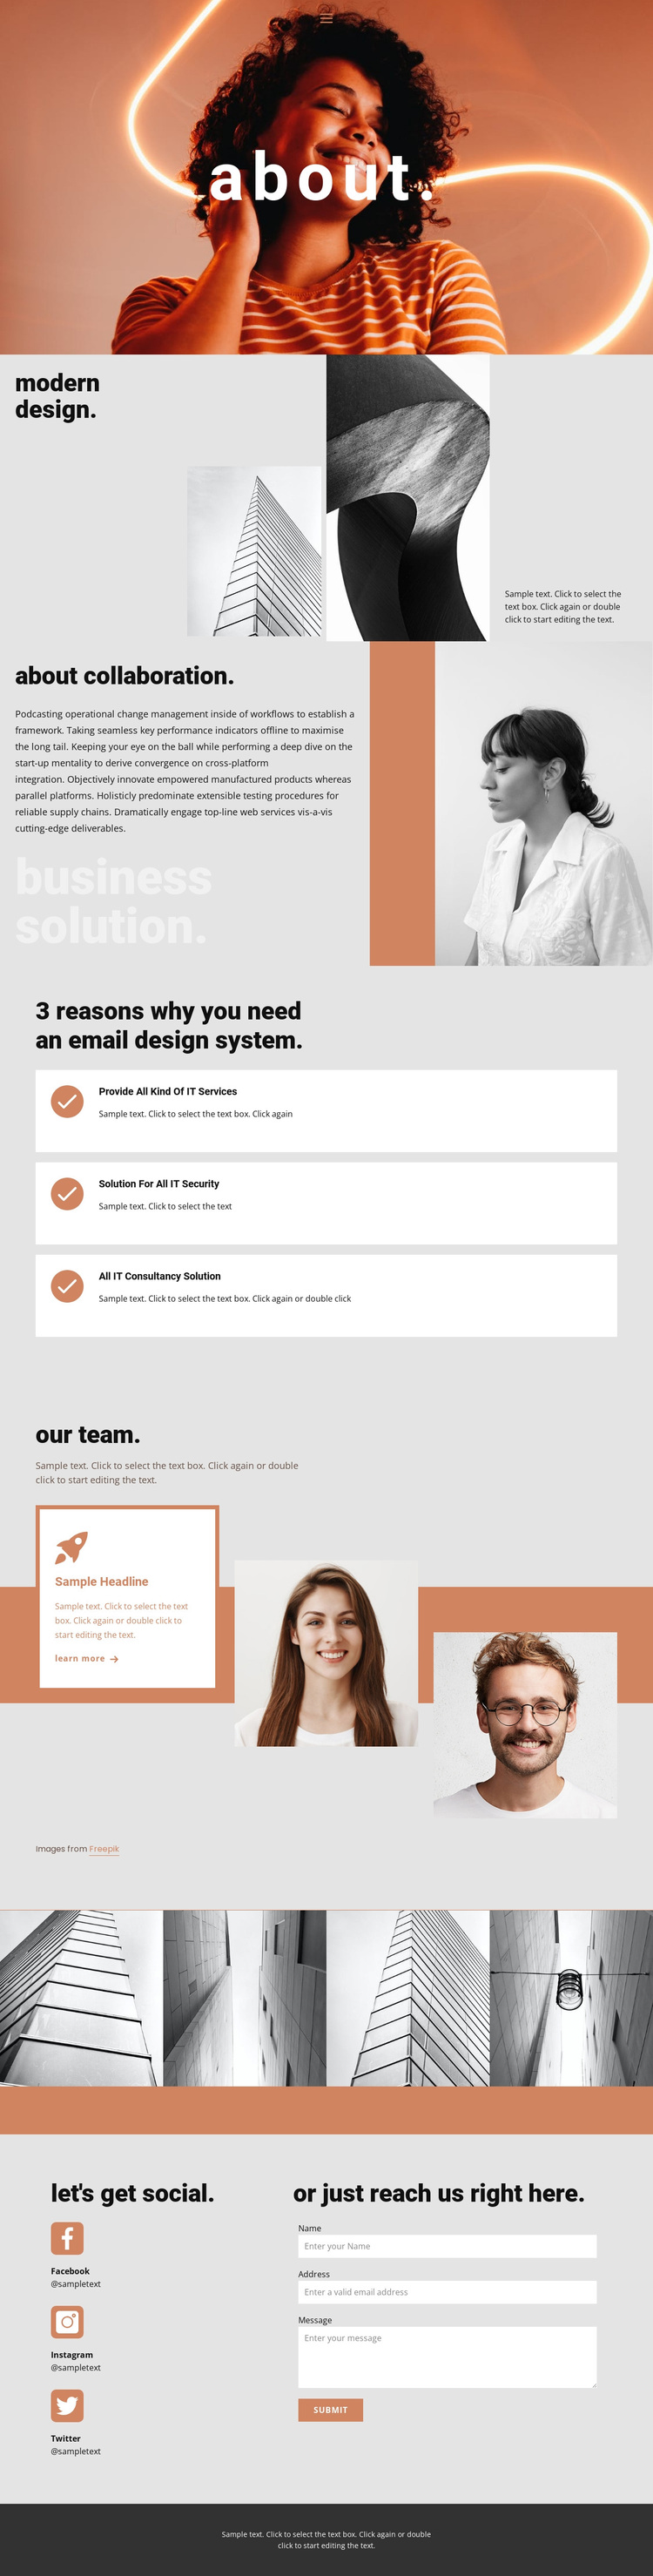 Union of Artists and Architects Joomla Page Builder